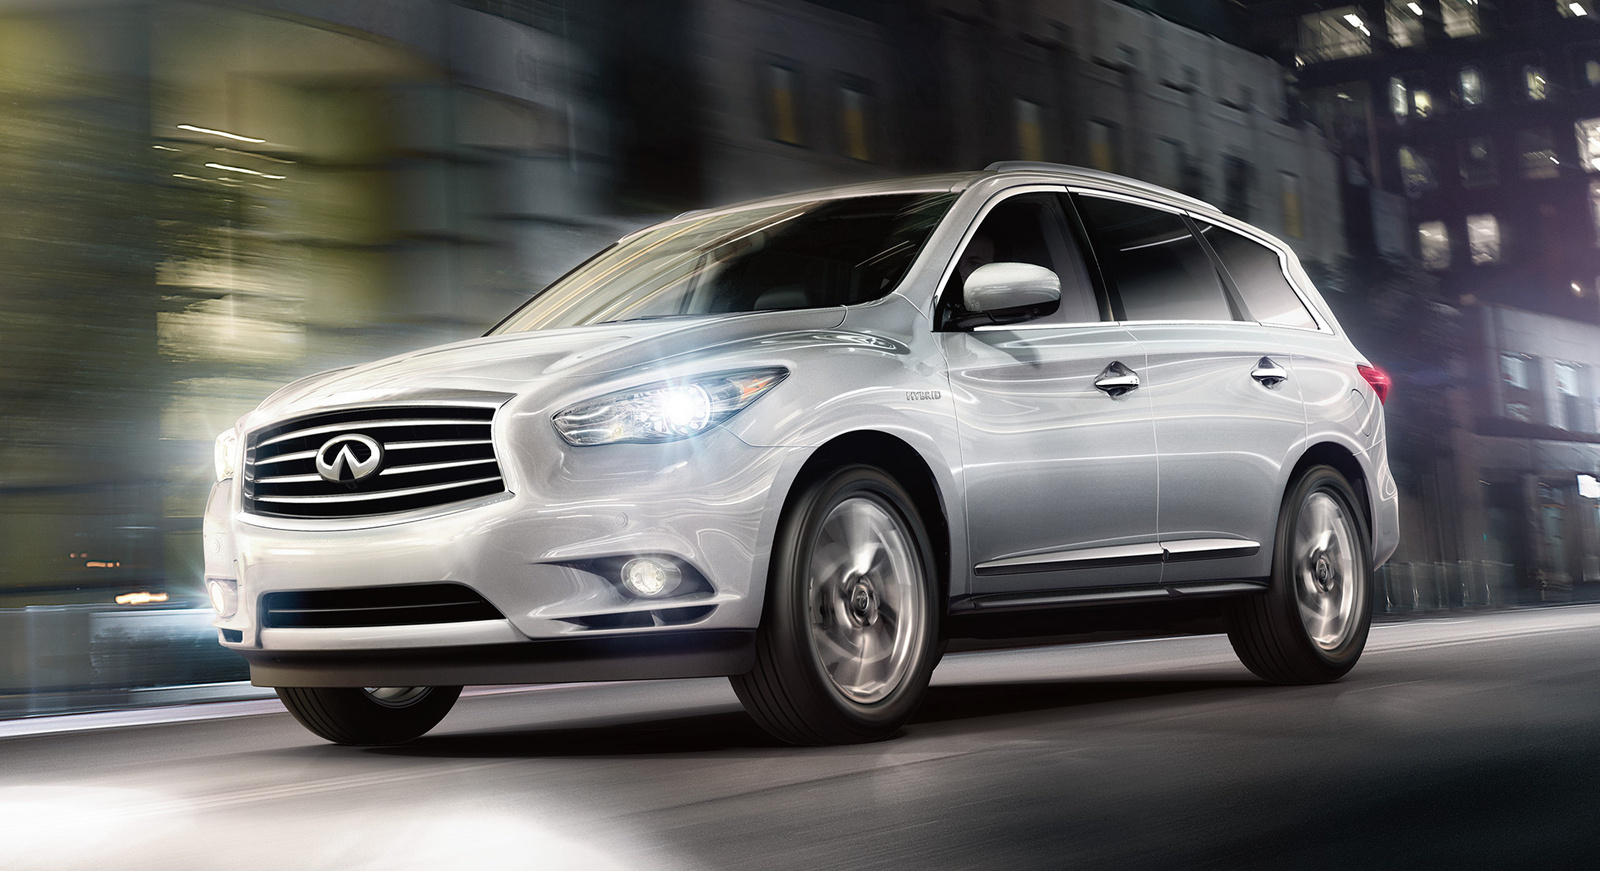 2016 infiniti qx60 hybrid overview cargurus. Black Bedroom Furniture Sets. Home Design Ideas